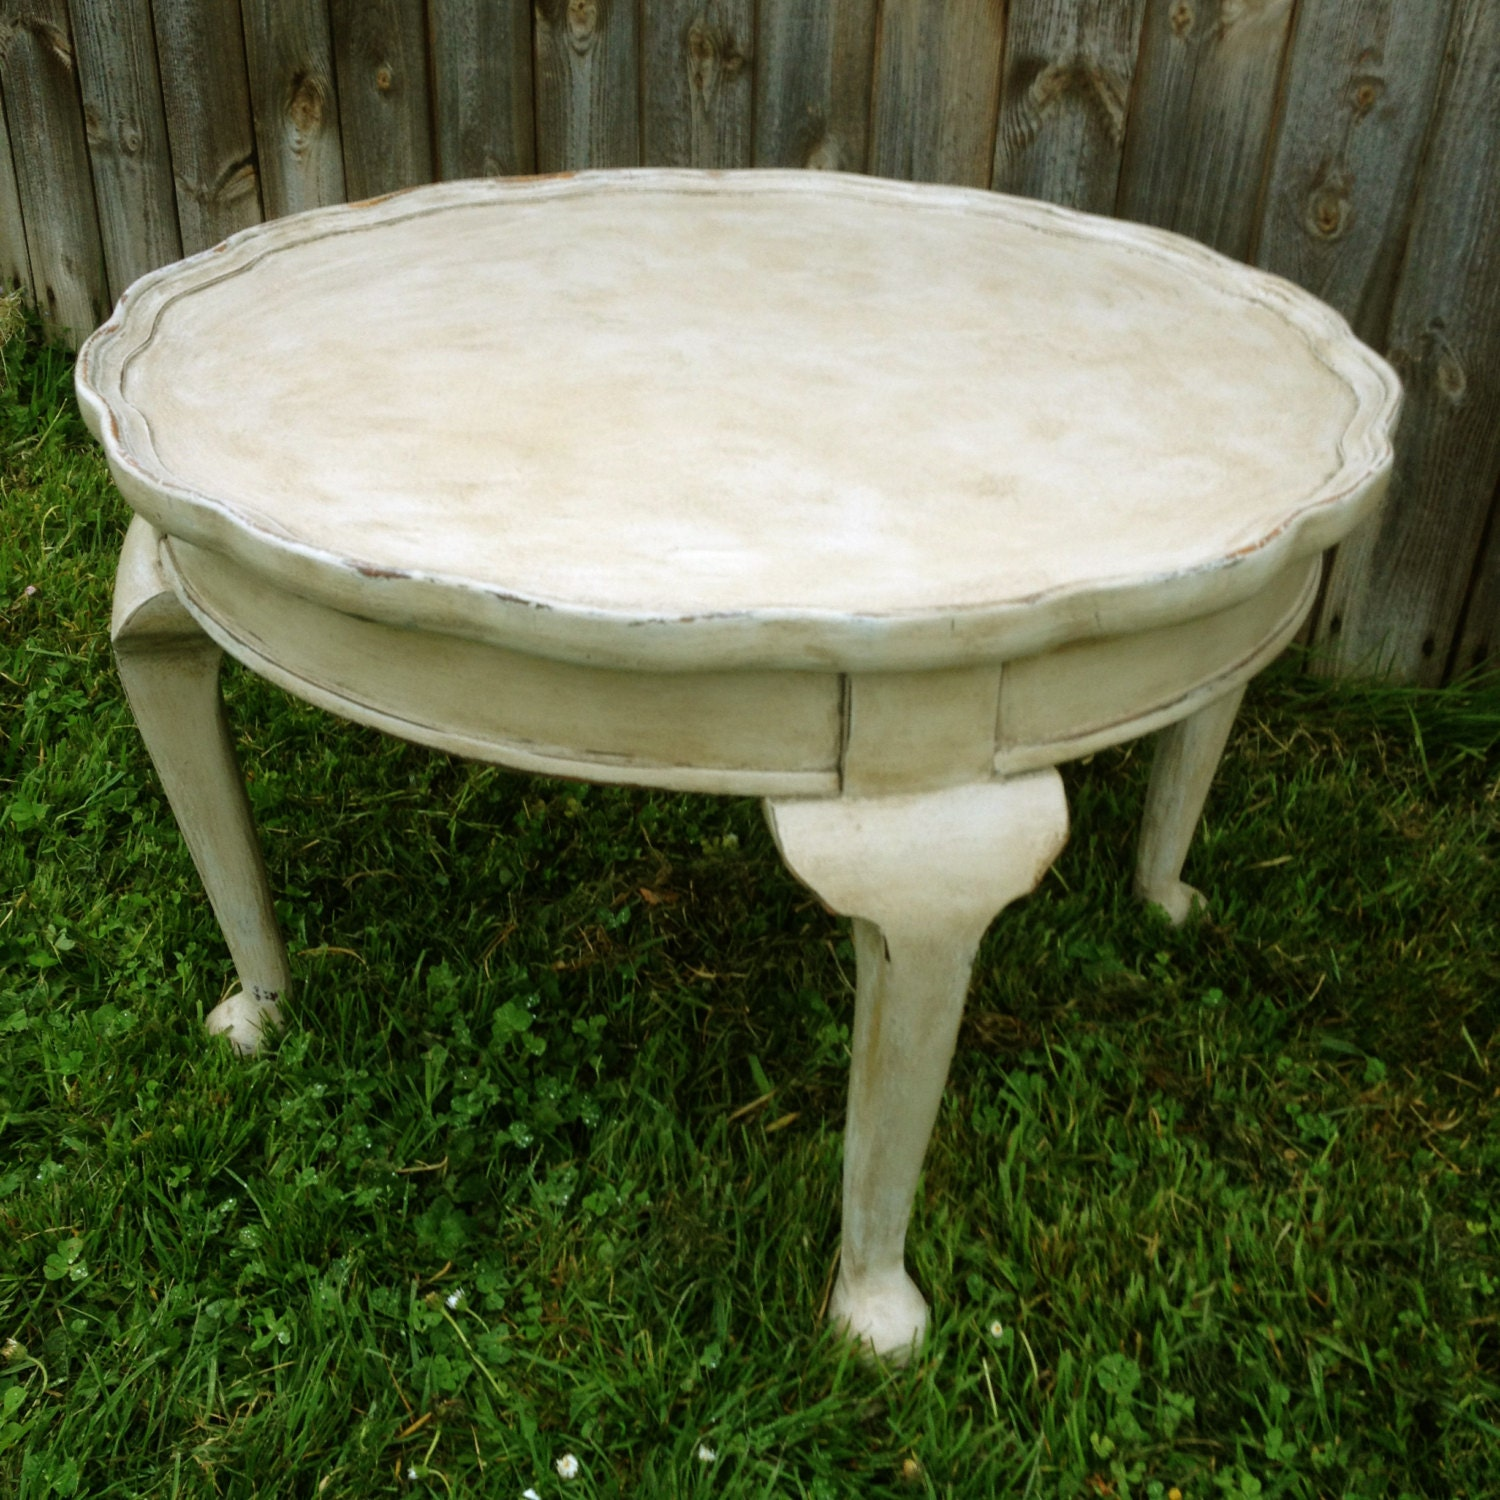 Antique Gray Coffee Tables: Vintage Grey Round Coffee Table With Pretty Details Hand